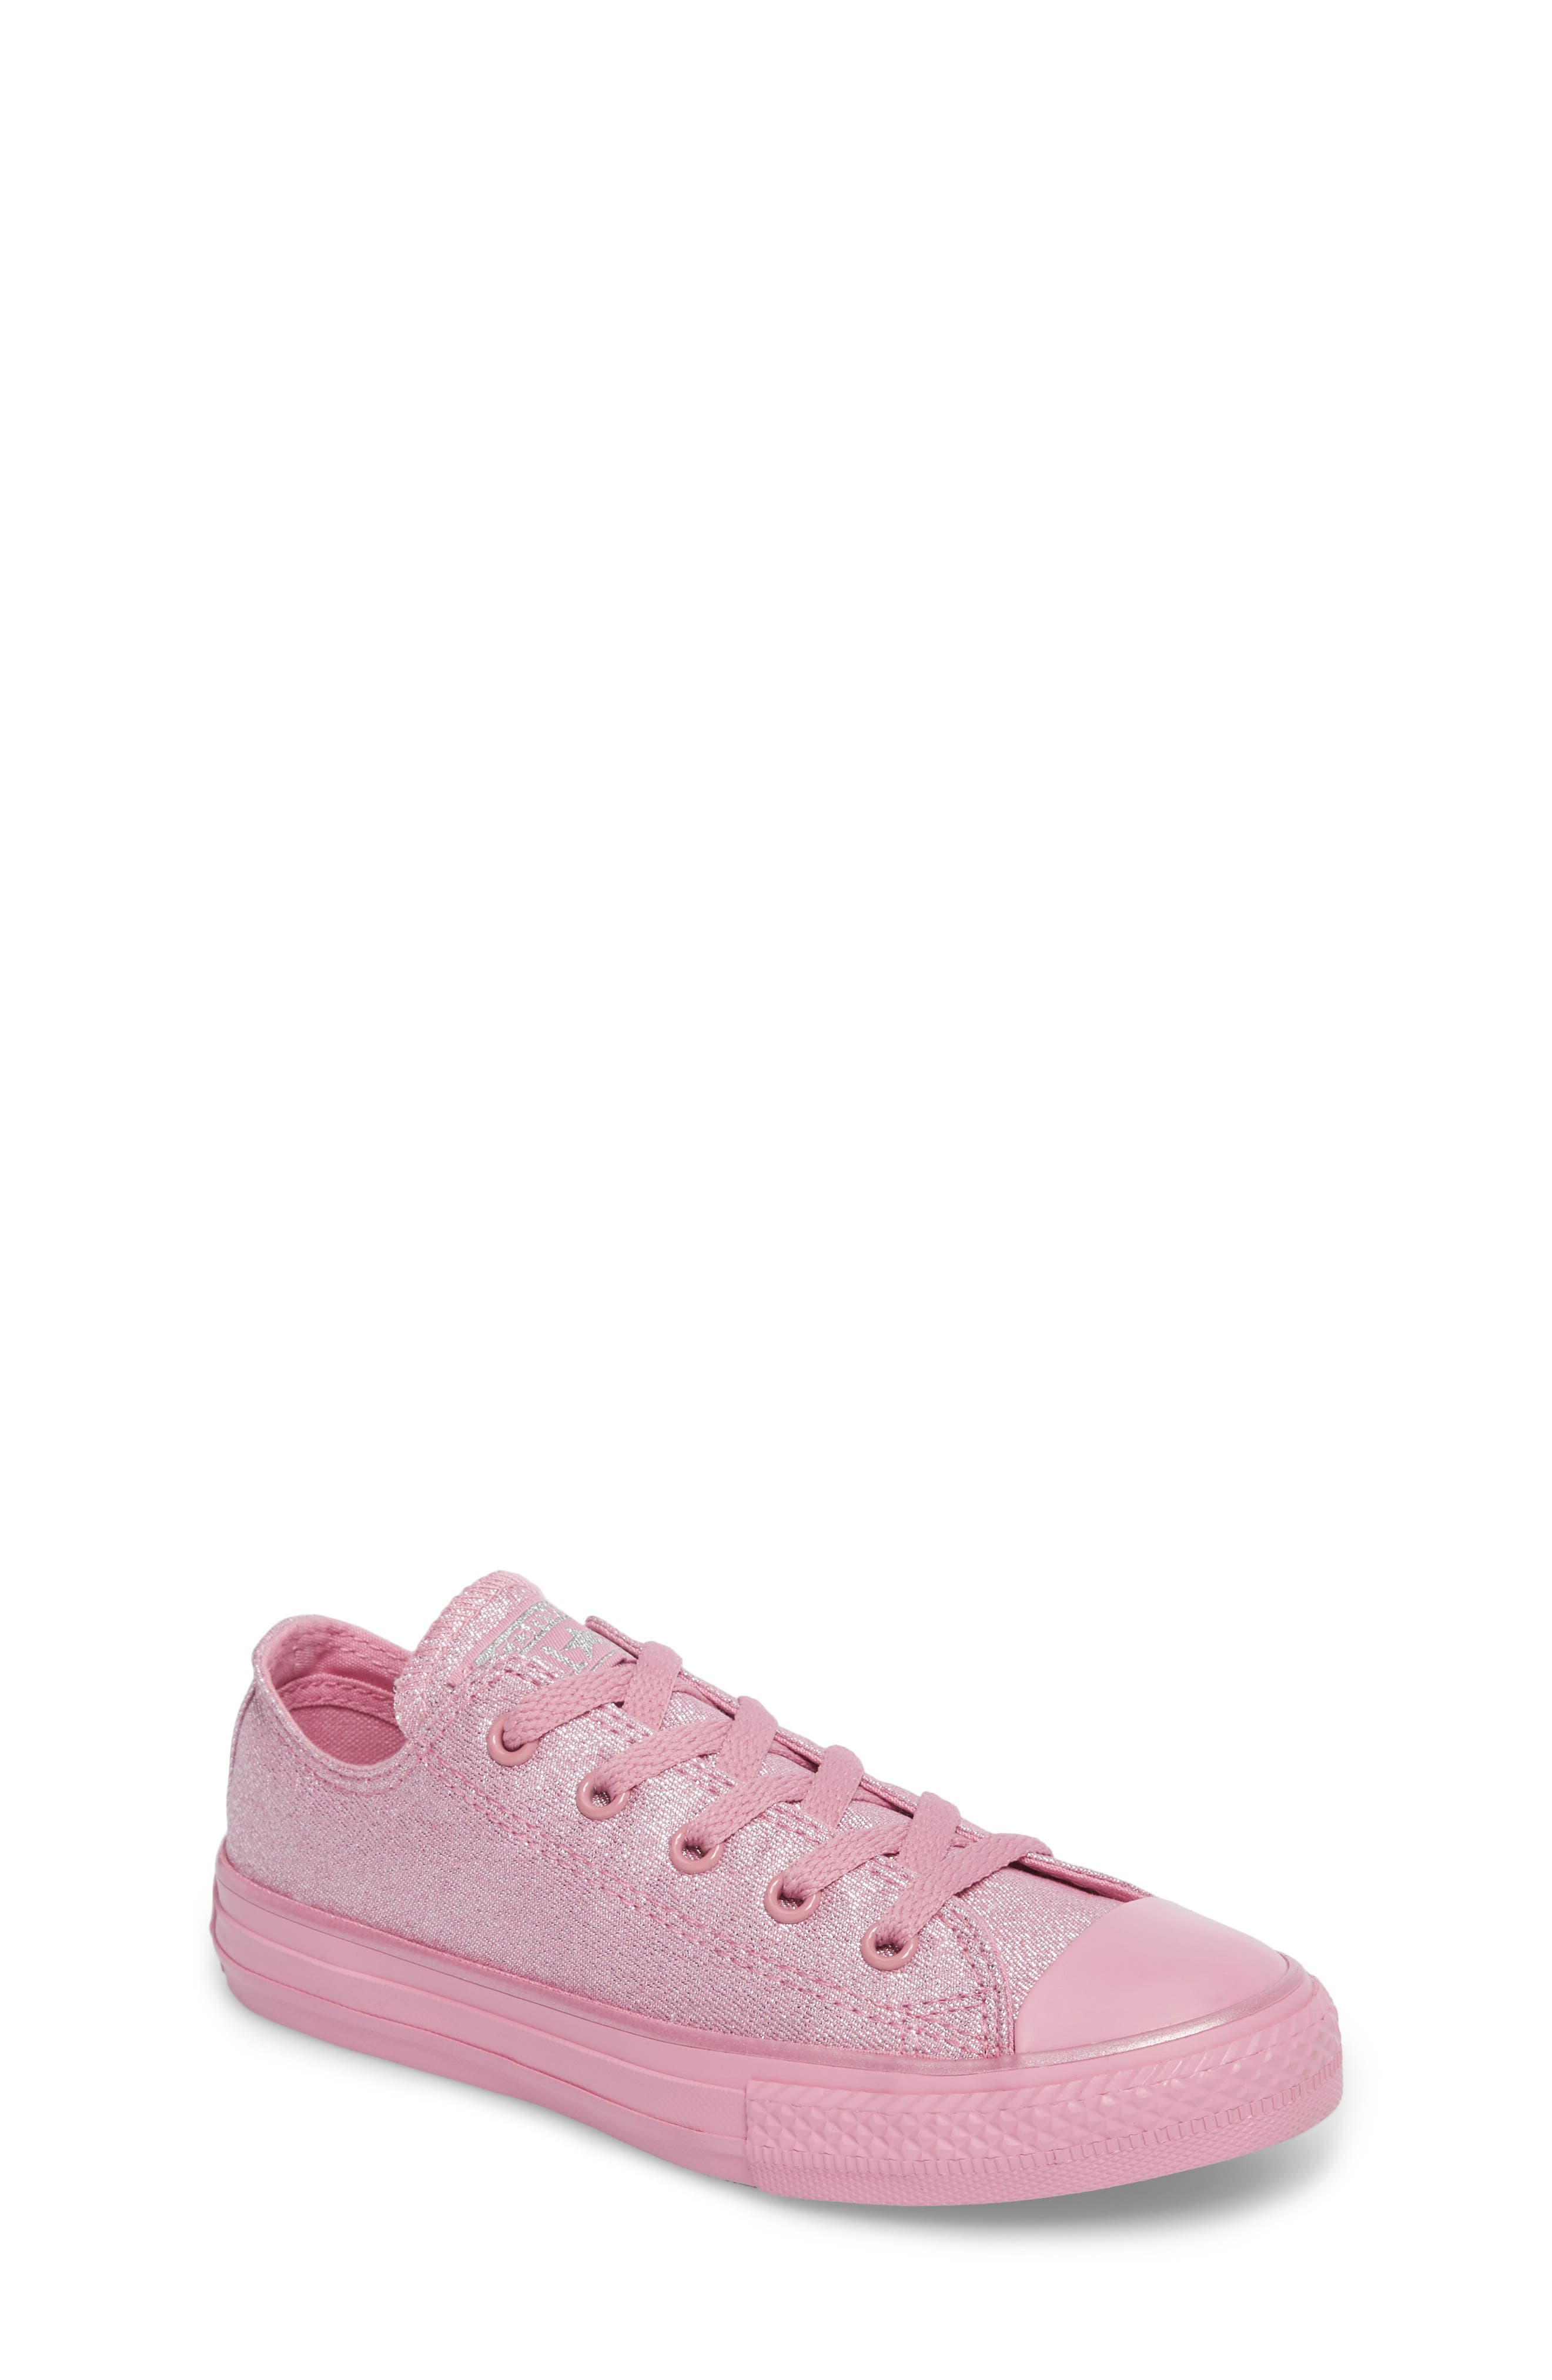 All Star<sup>®</sup> Mono Shine Low Top Sneaker,                         Main,                         color, 650